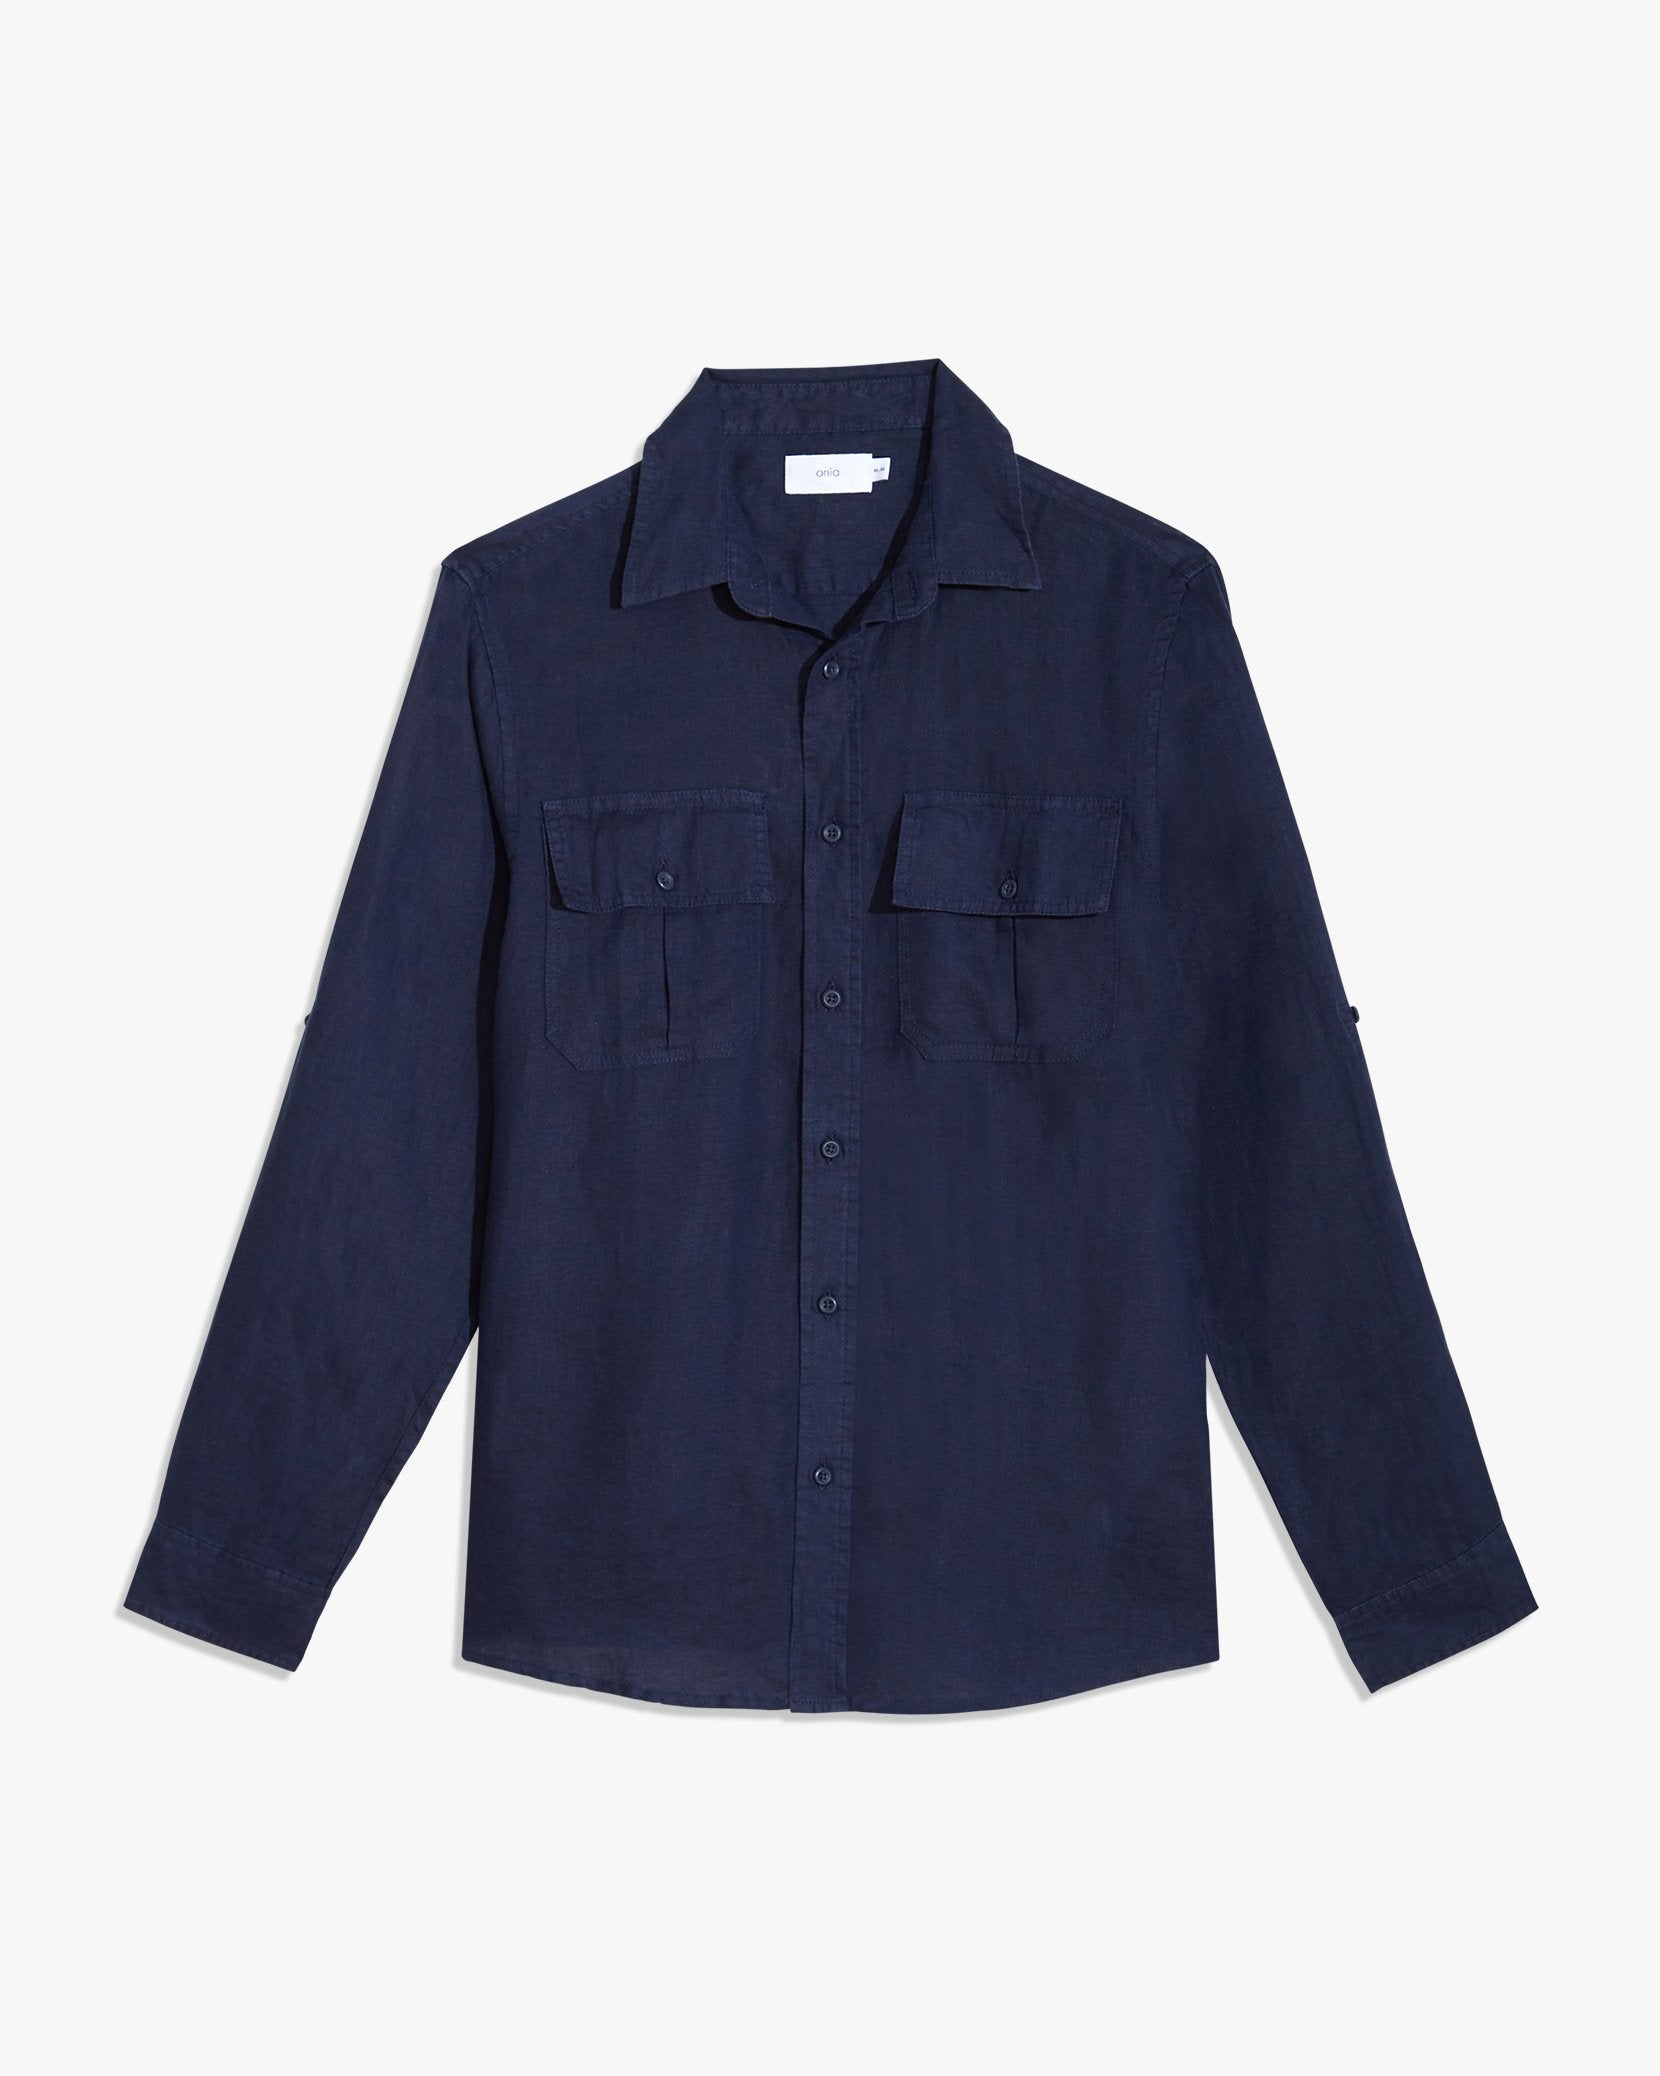 Garret Linen Shirt in Deep Navy - 8 - Onia